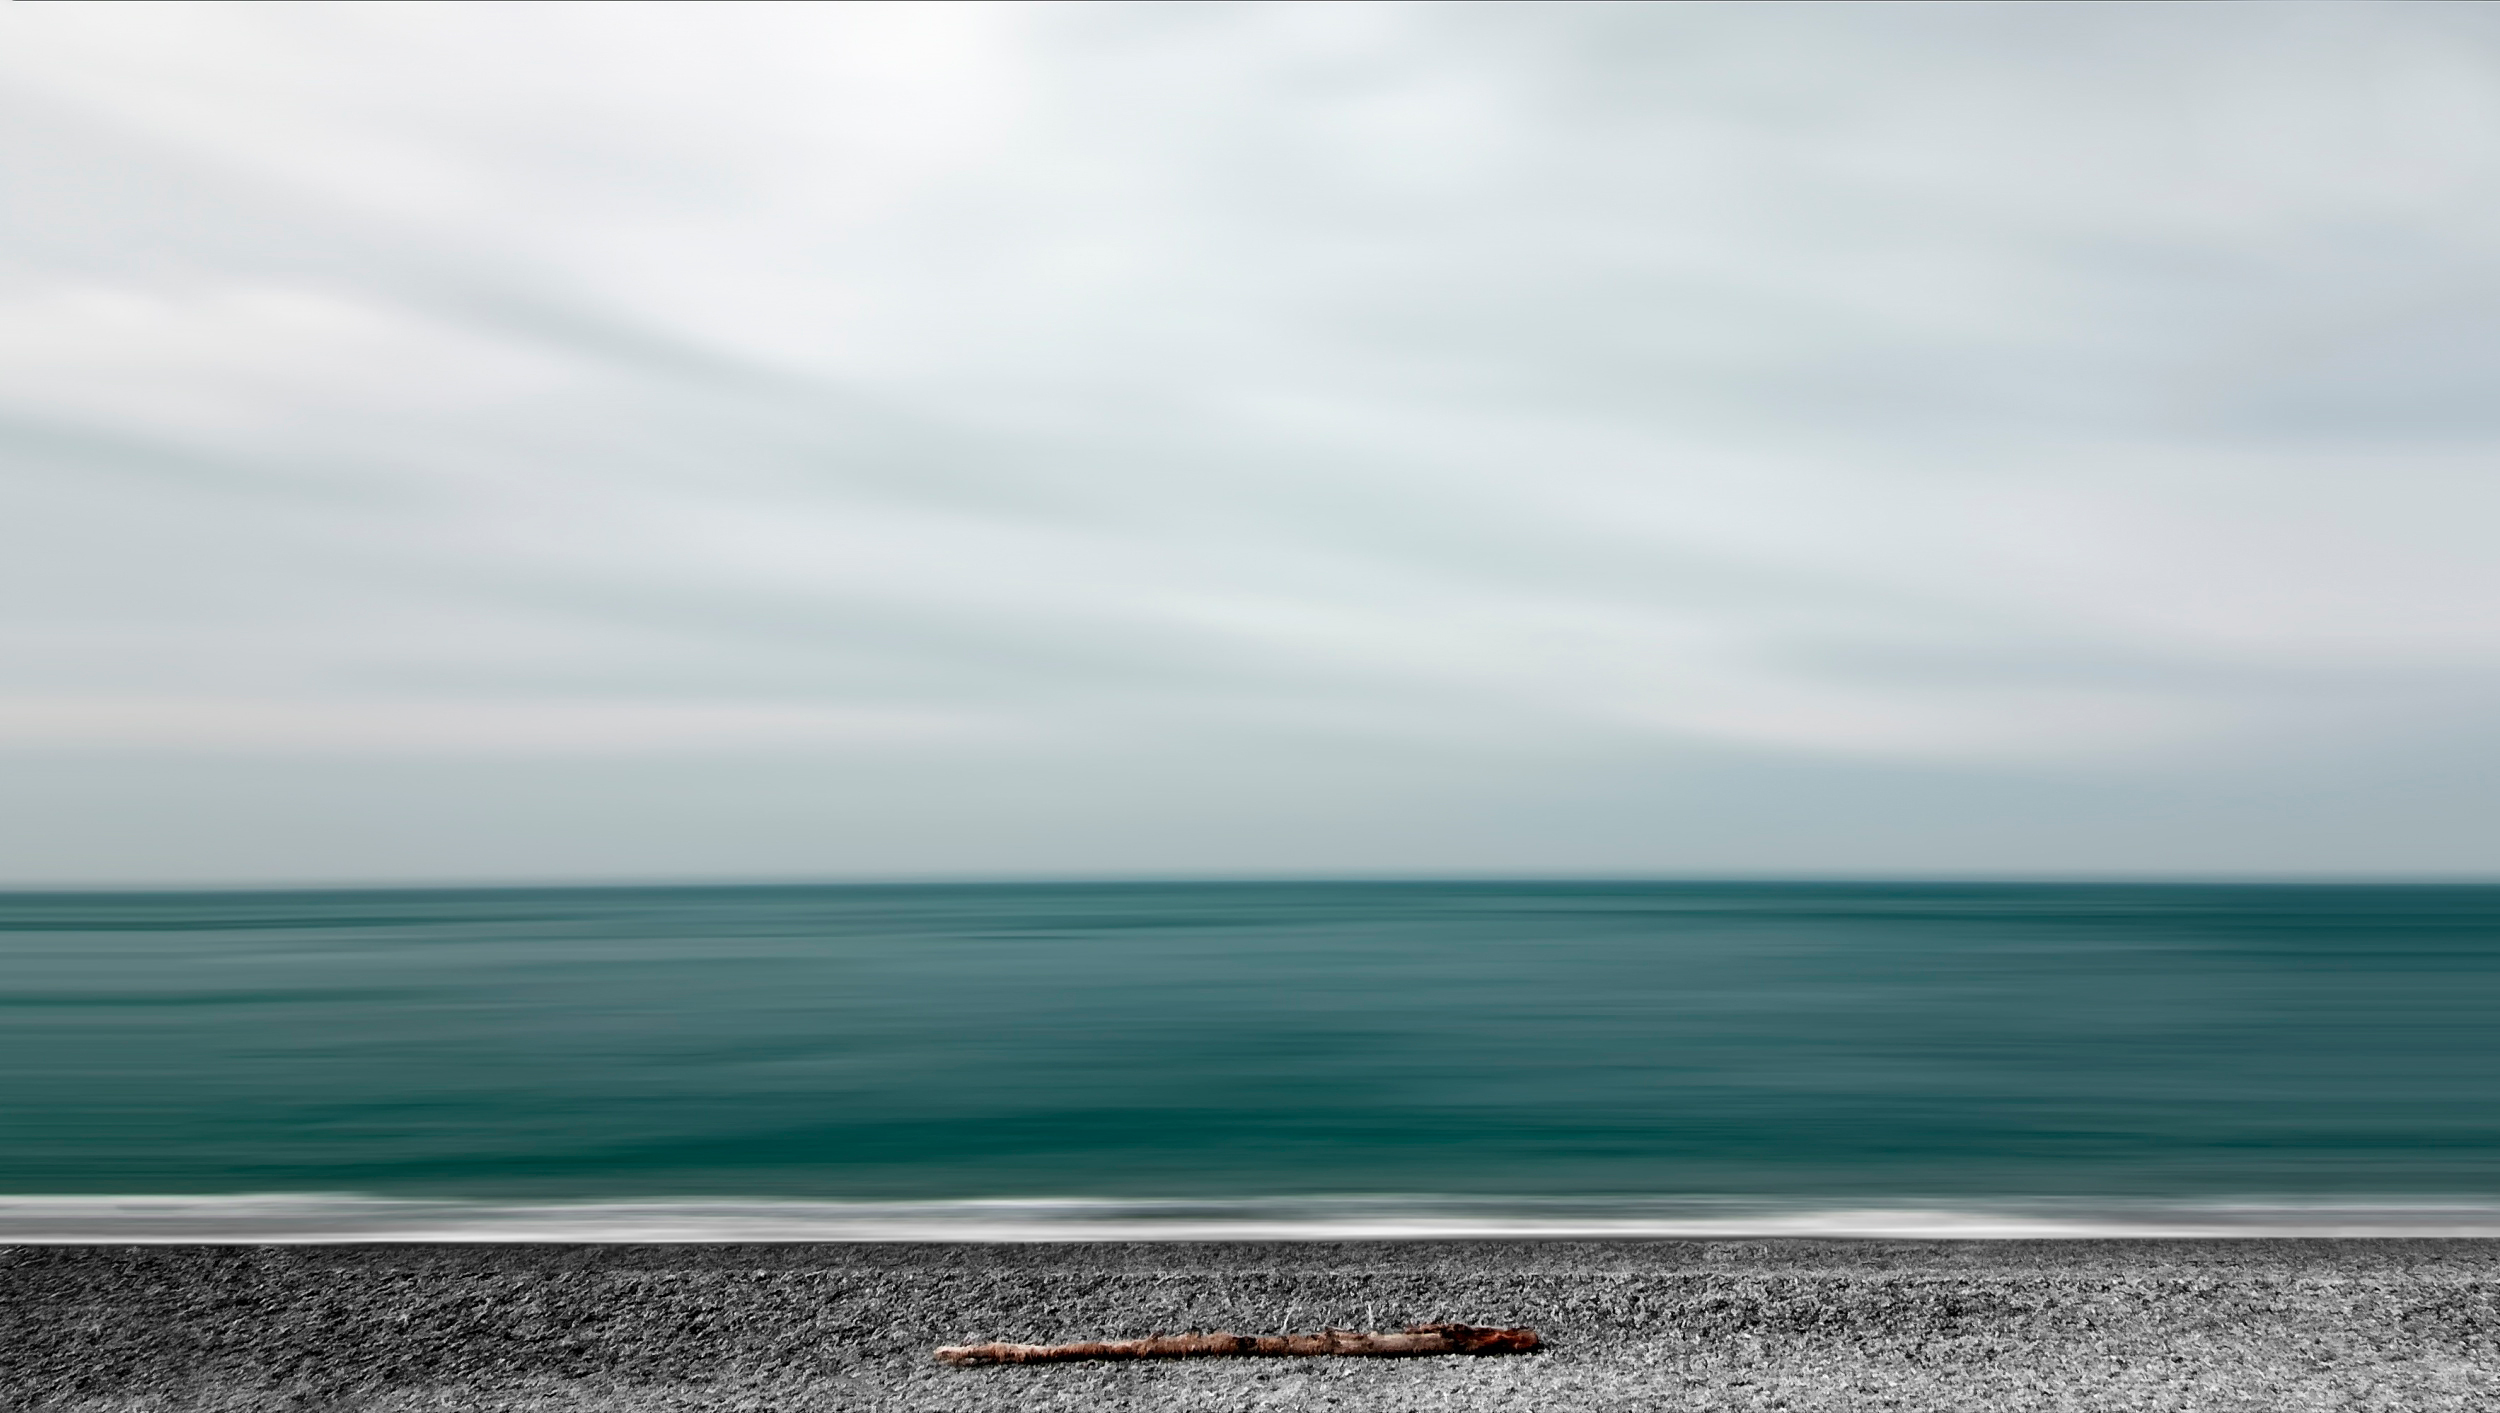 131914 download wallpaper Minimalism, Sea, Shore, Bank screensavers and pictures for free